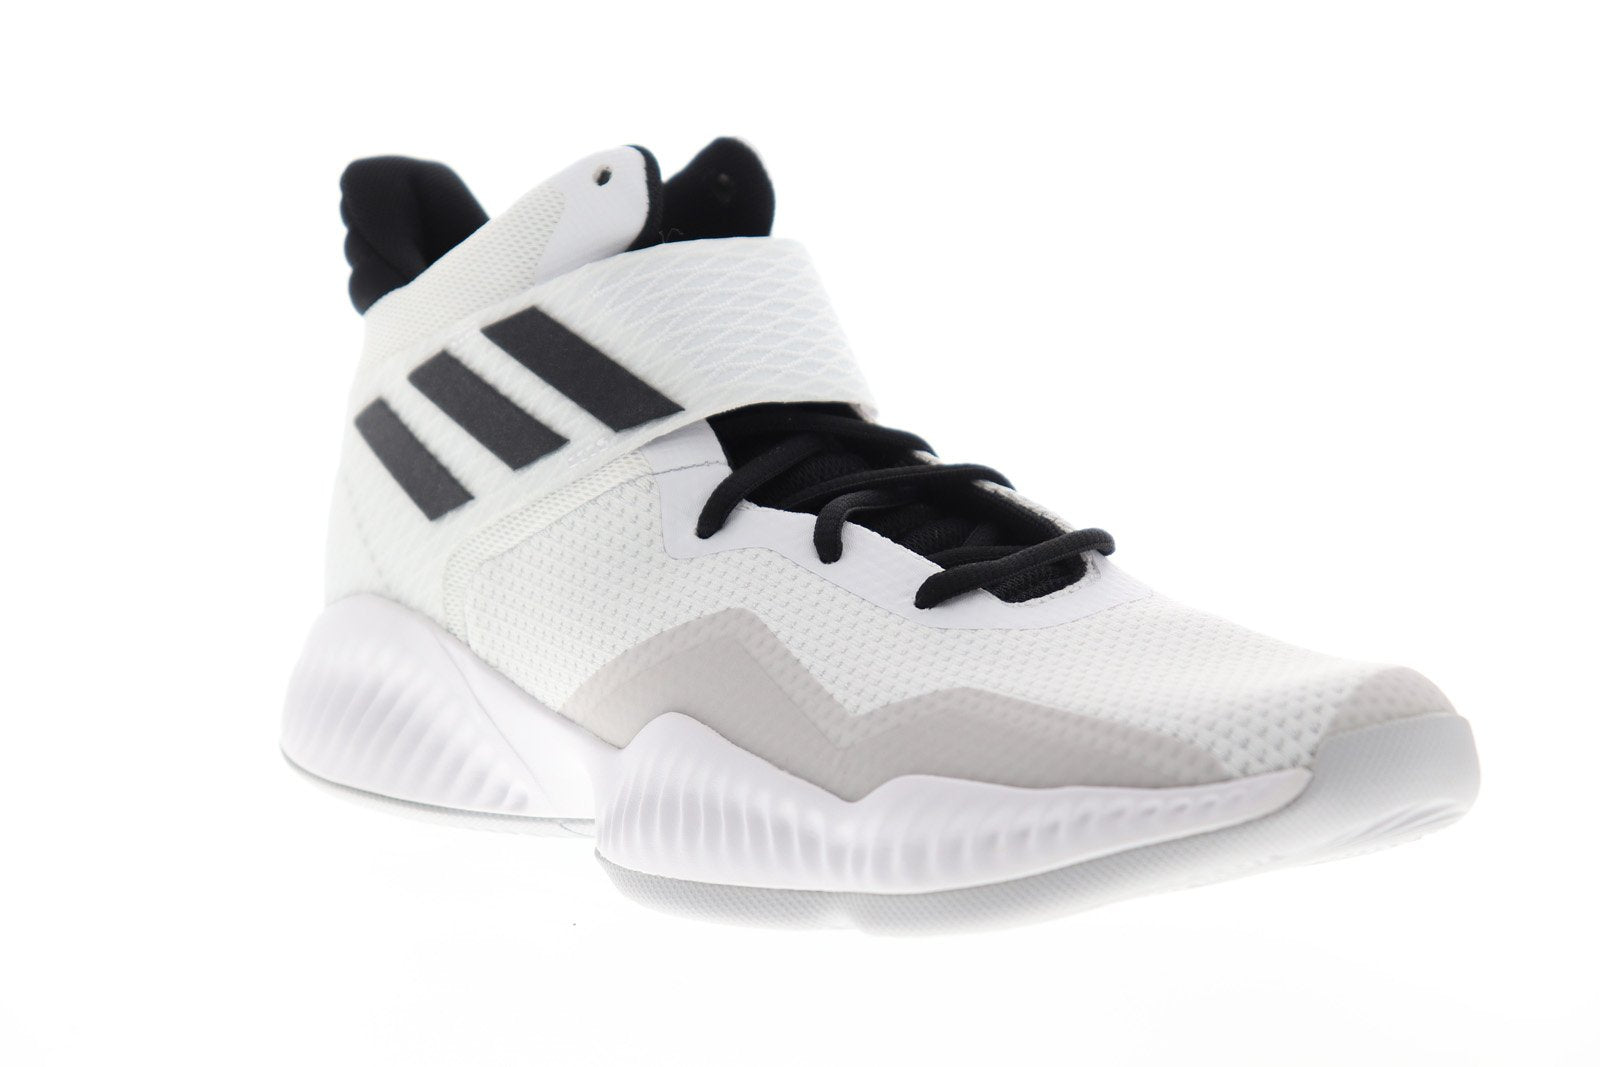 Ruze Shoes: Adidas Marquee Boost Low Mens White Textile Athletic Basketball Shoes 10.5 |